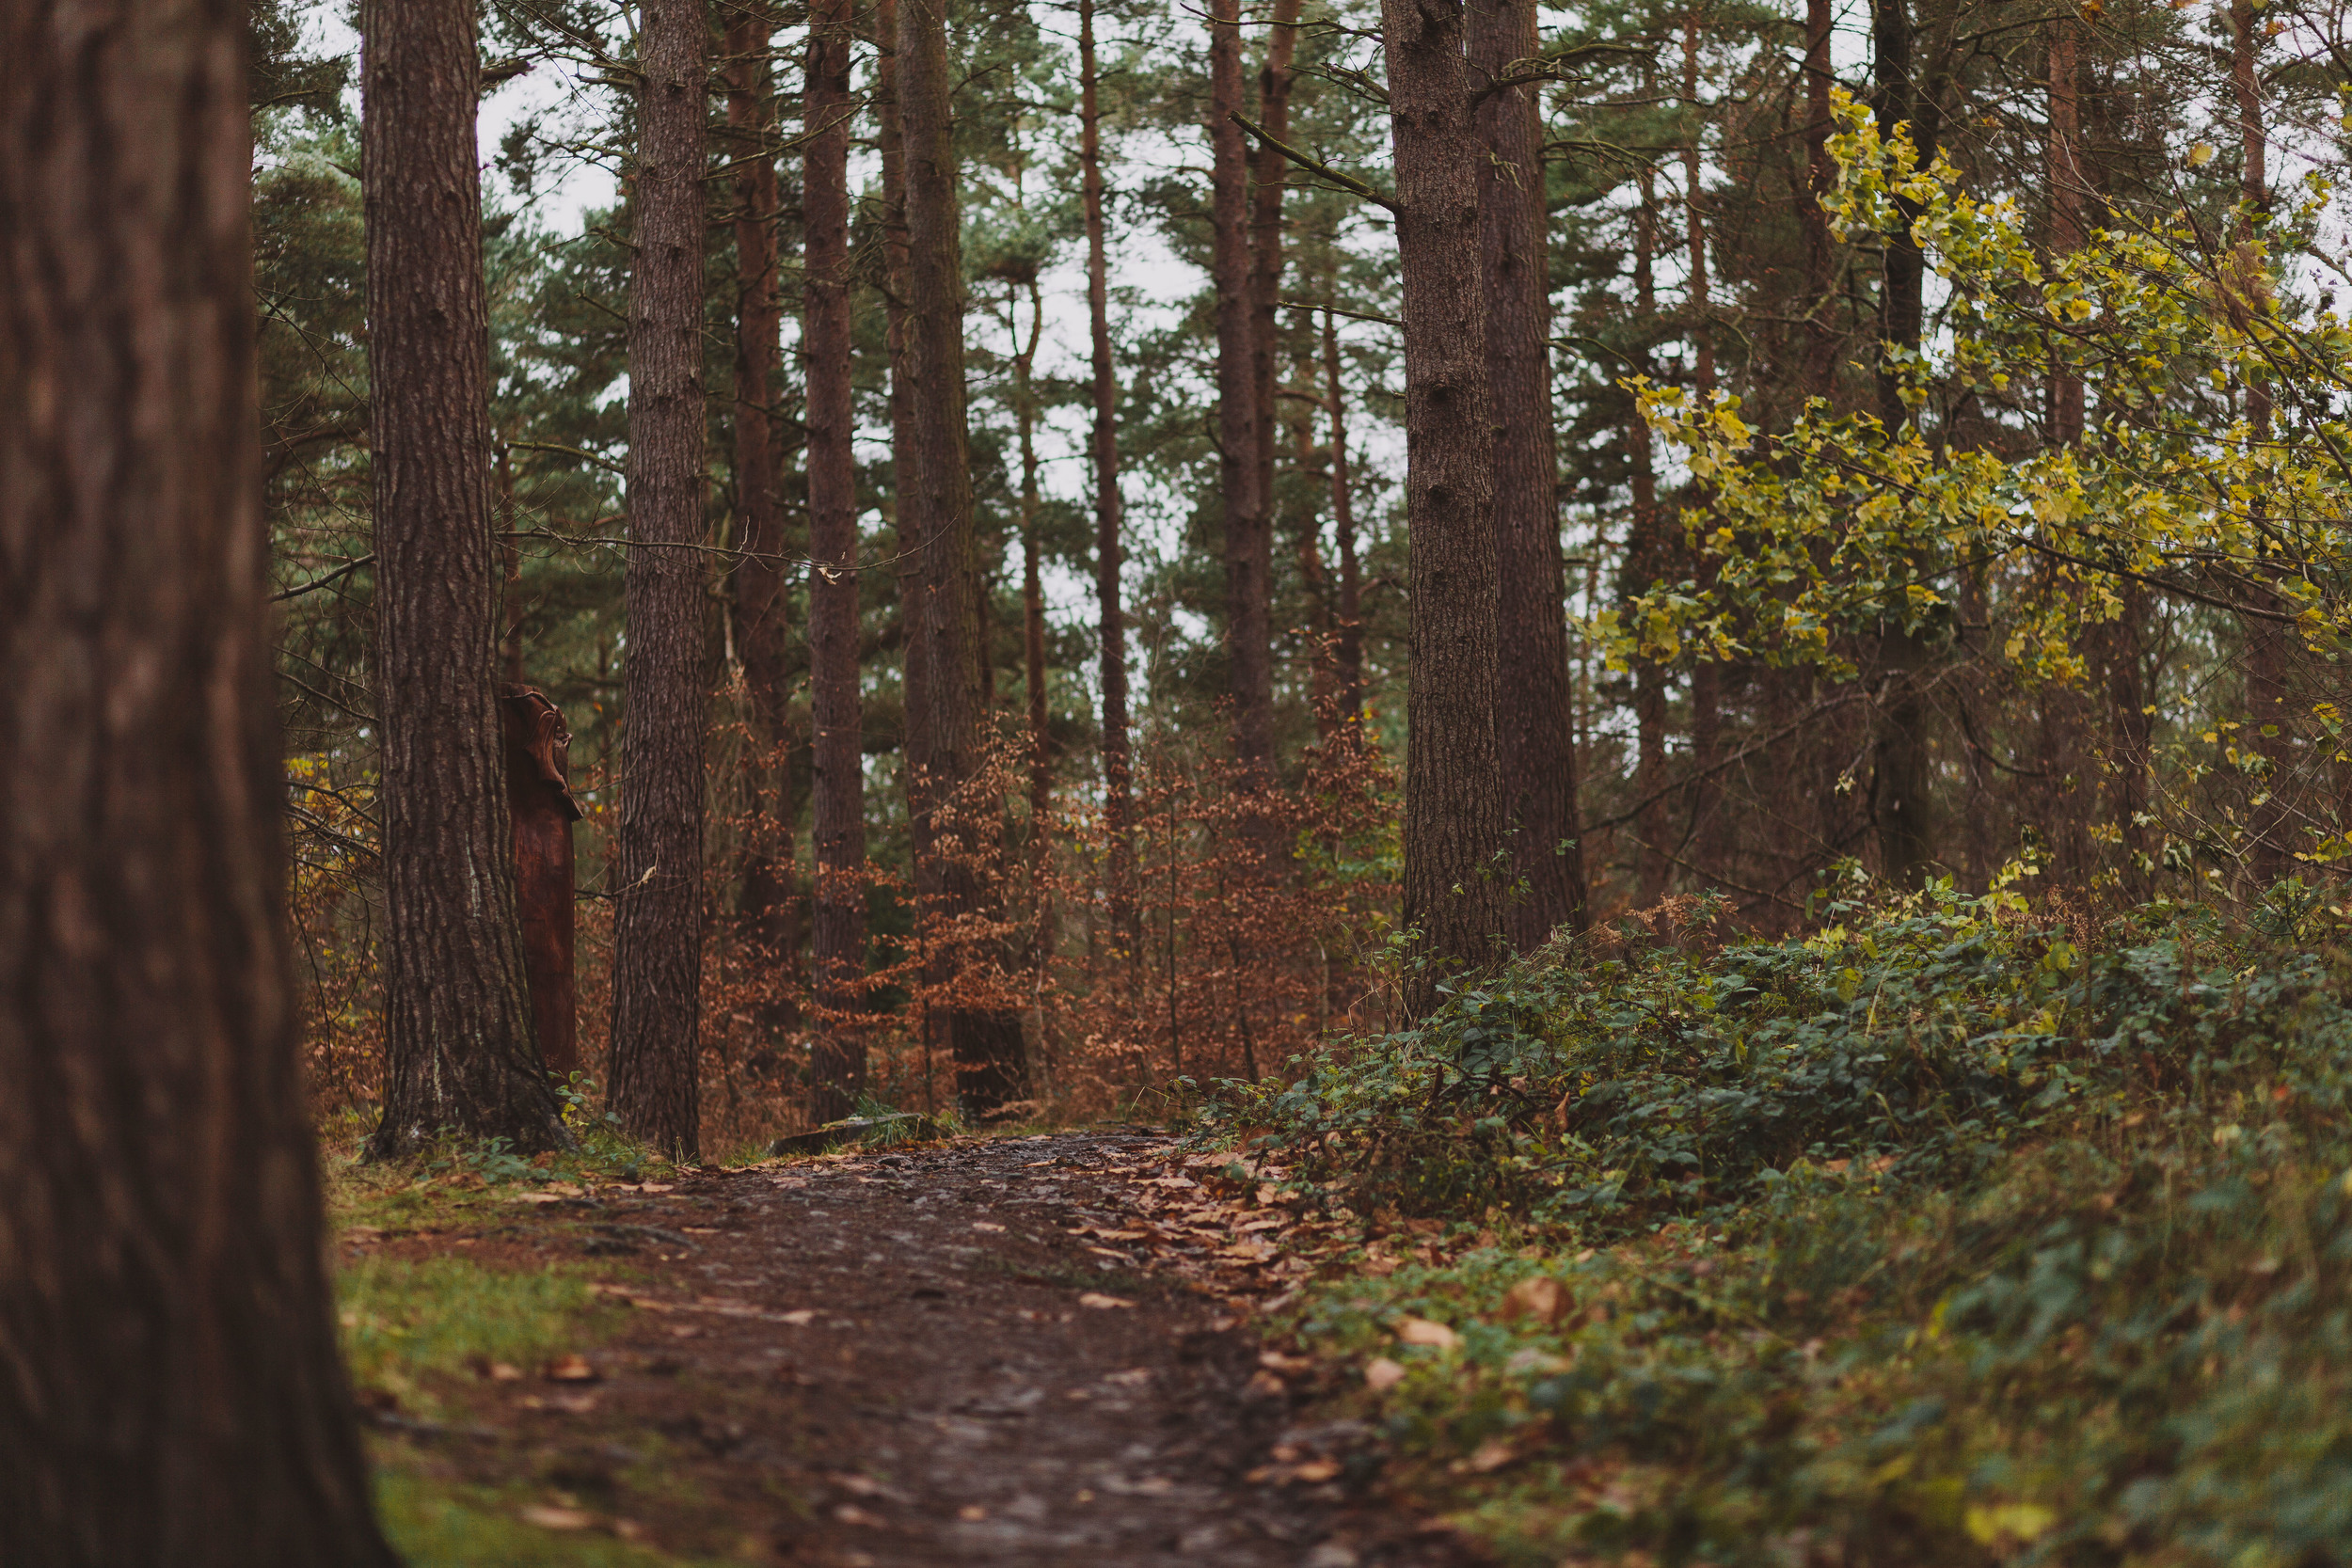 Barry Forshaw // Engagement shoot scouting at Chopwell Woods // An autumn path covered in leaves